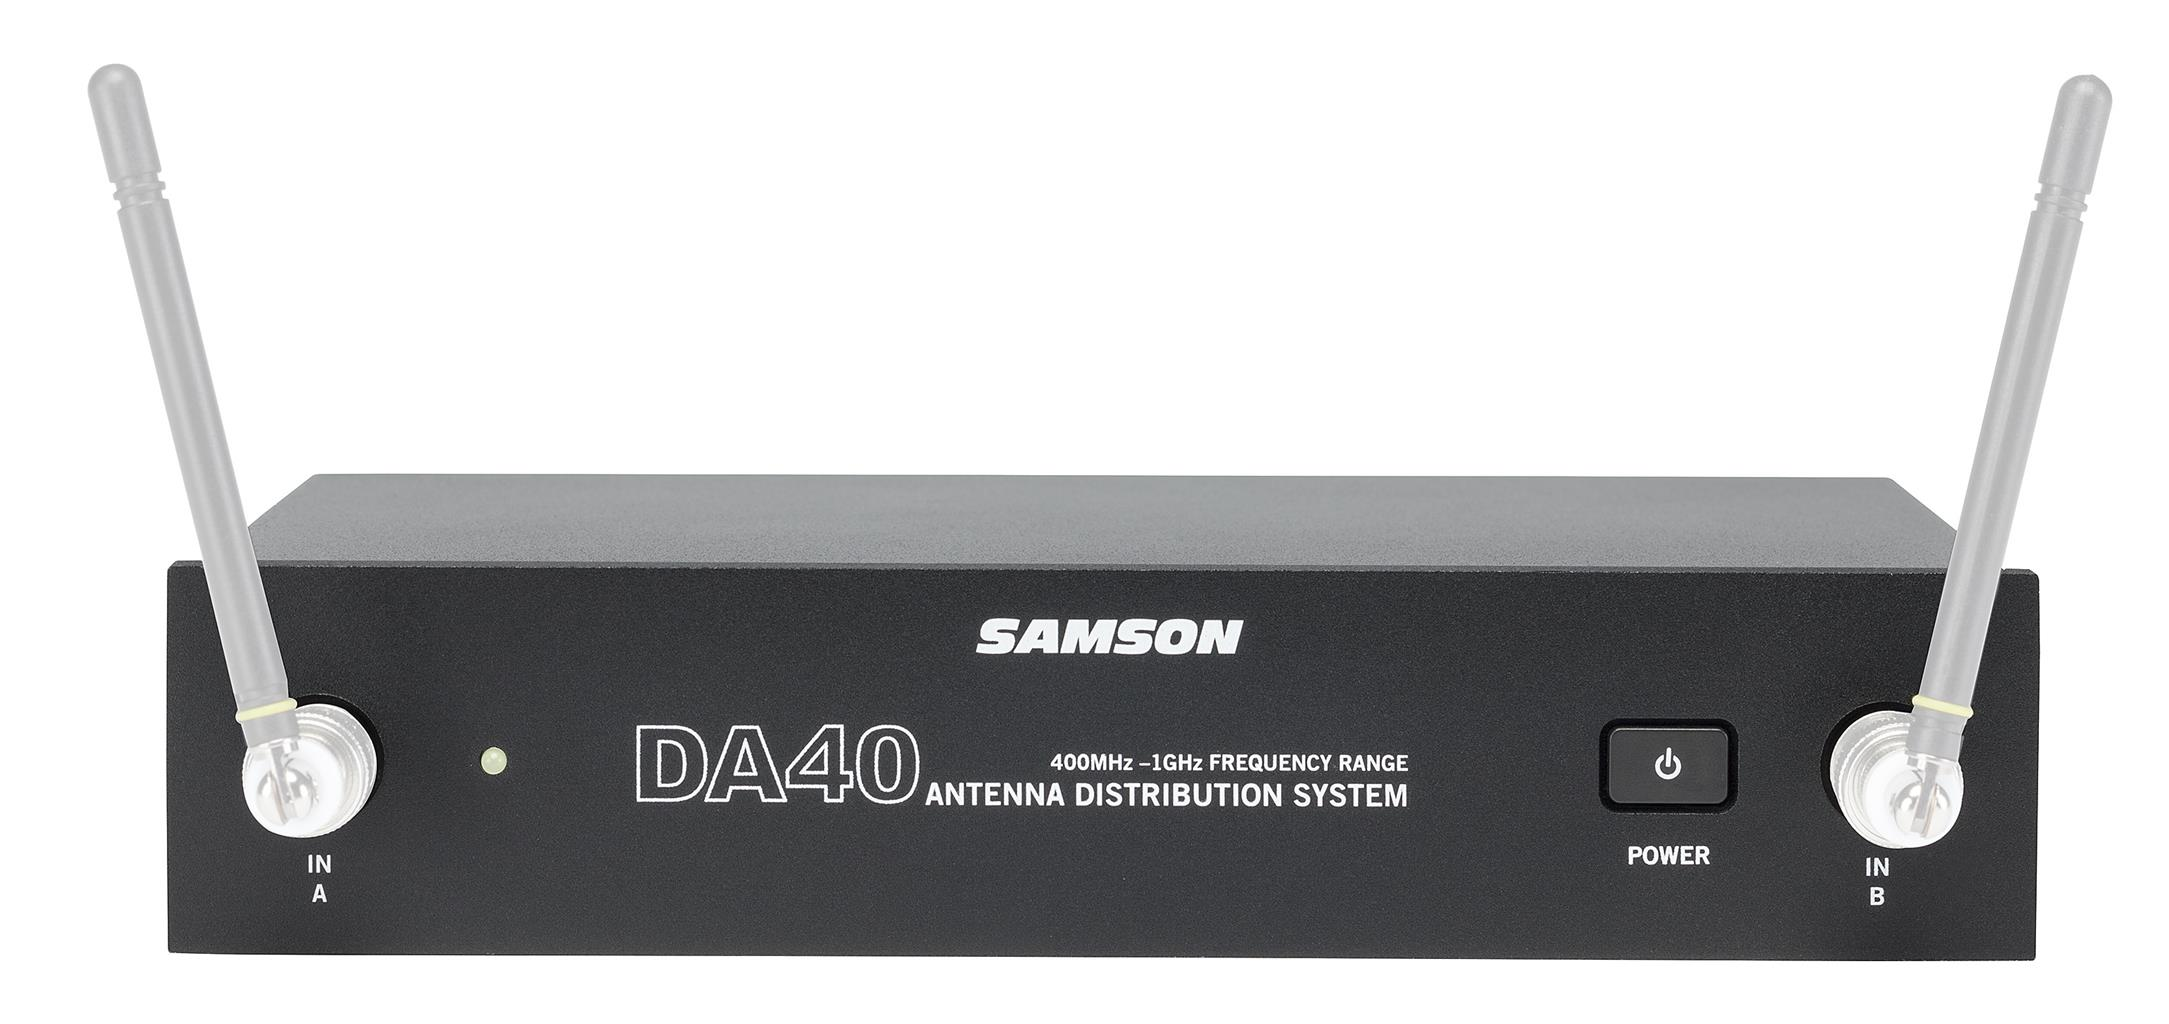 Samson DA40 - Antenna Distribution System